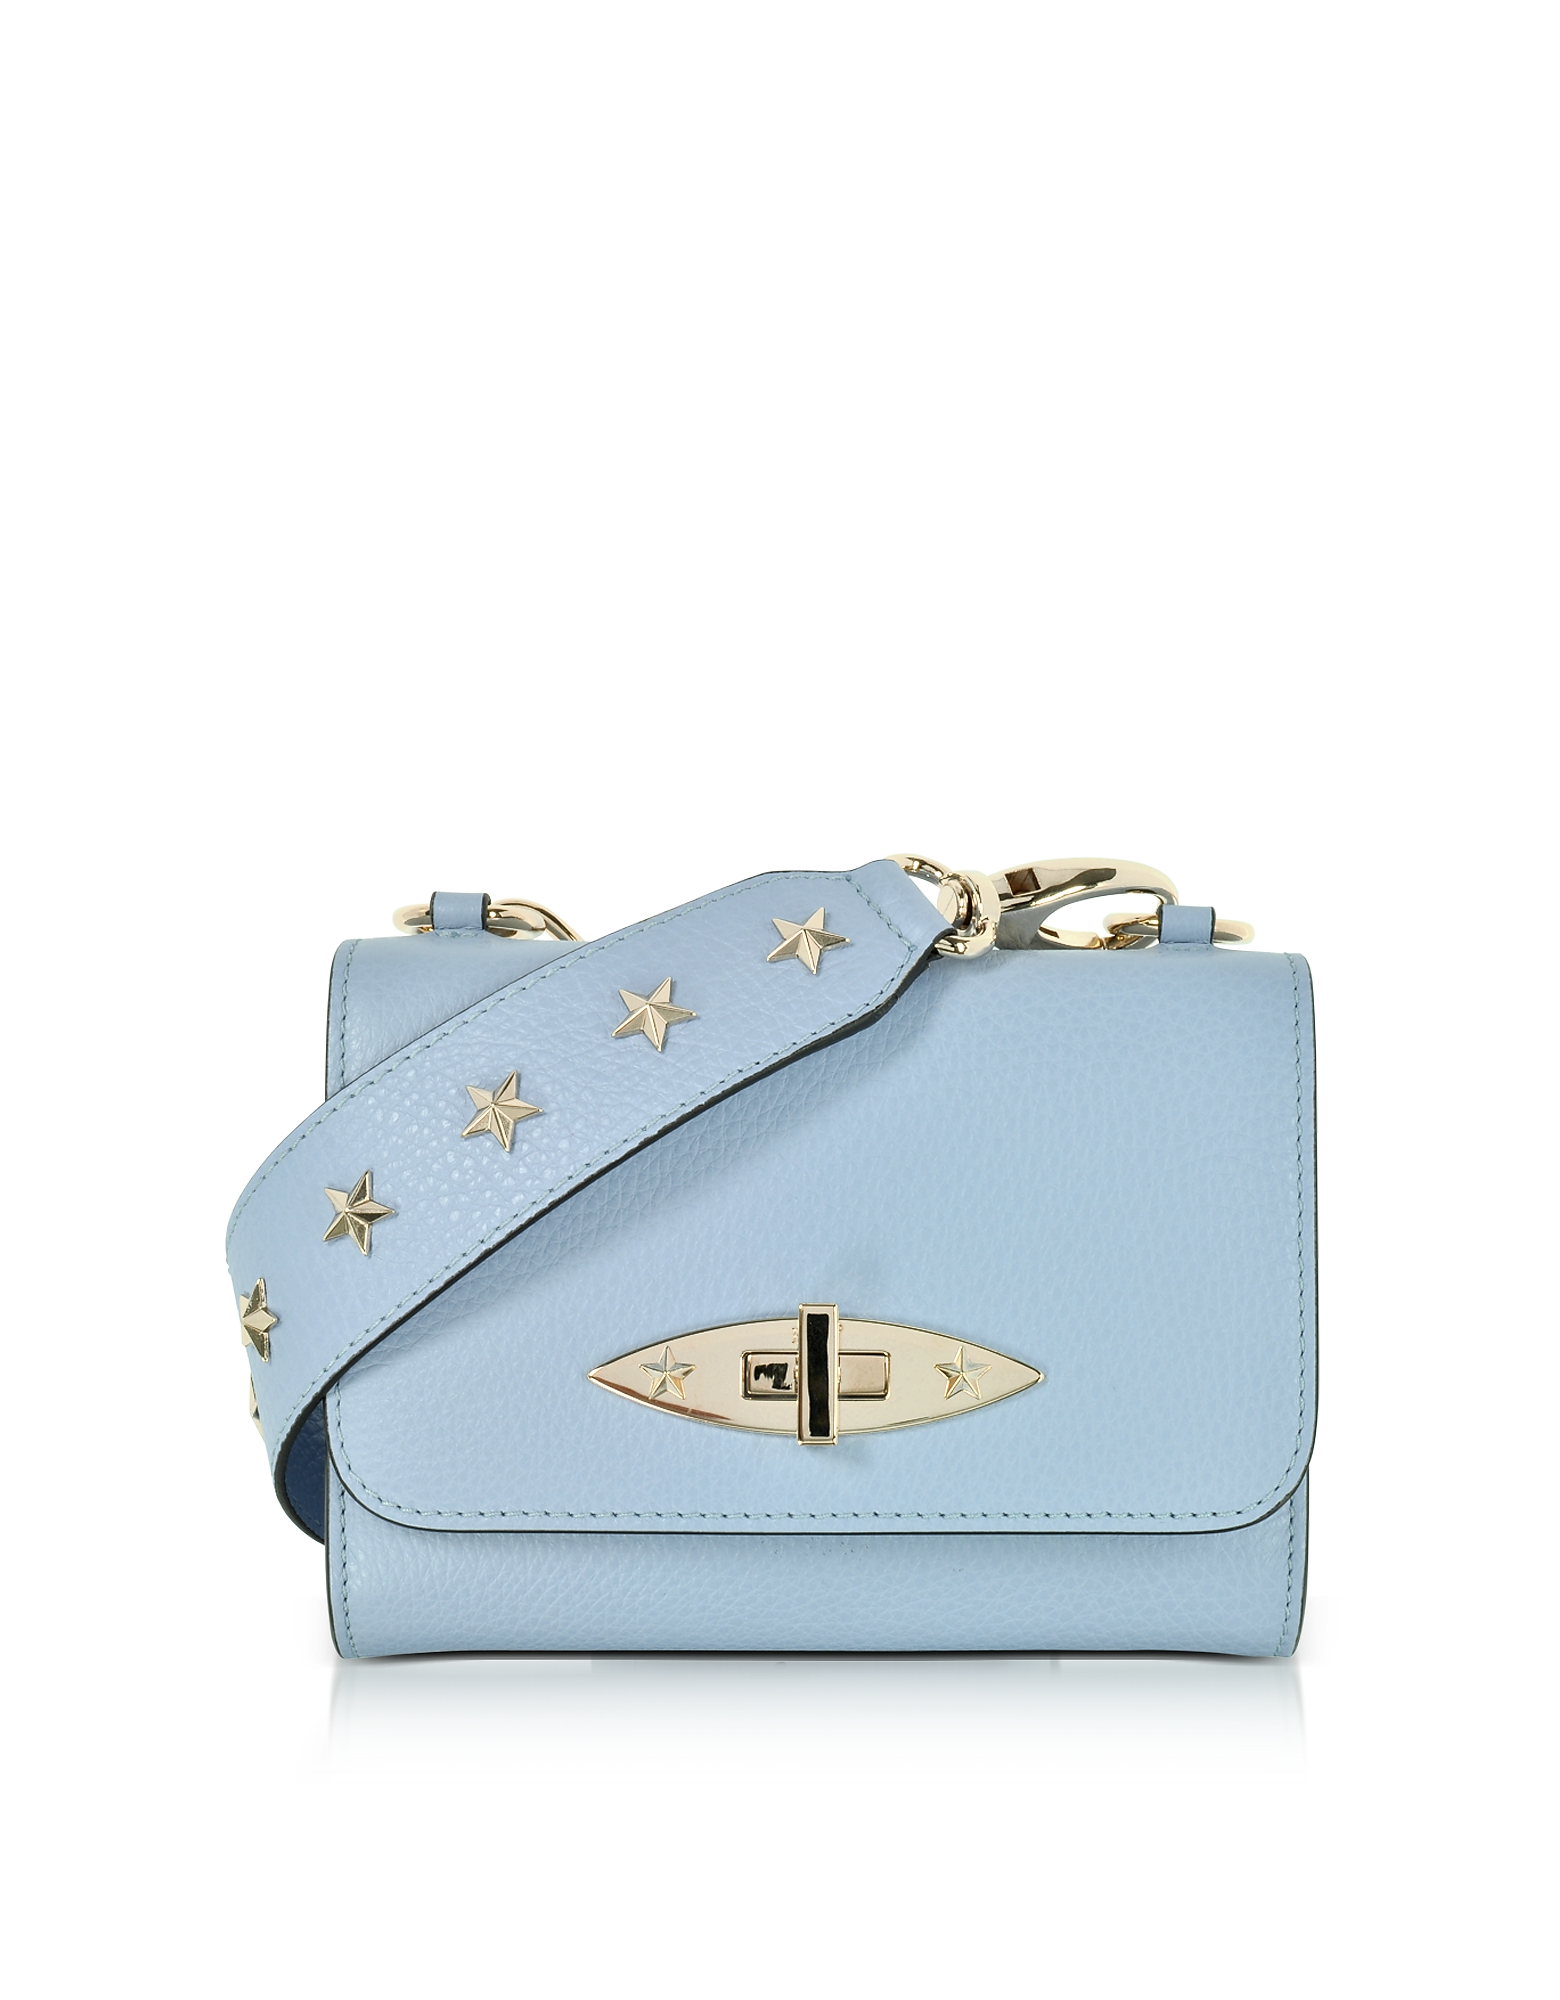 RED Valentino Handbags, Leather Shoulder Bag w/Stars